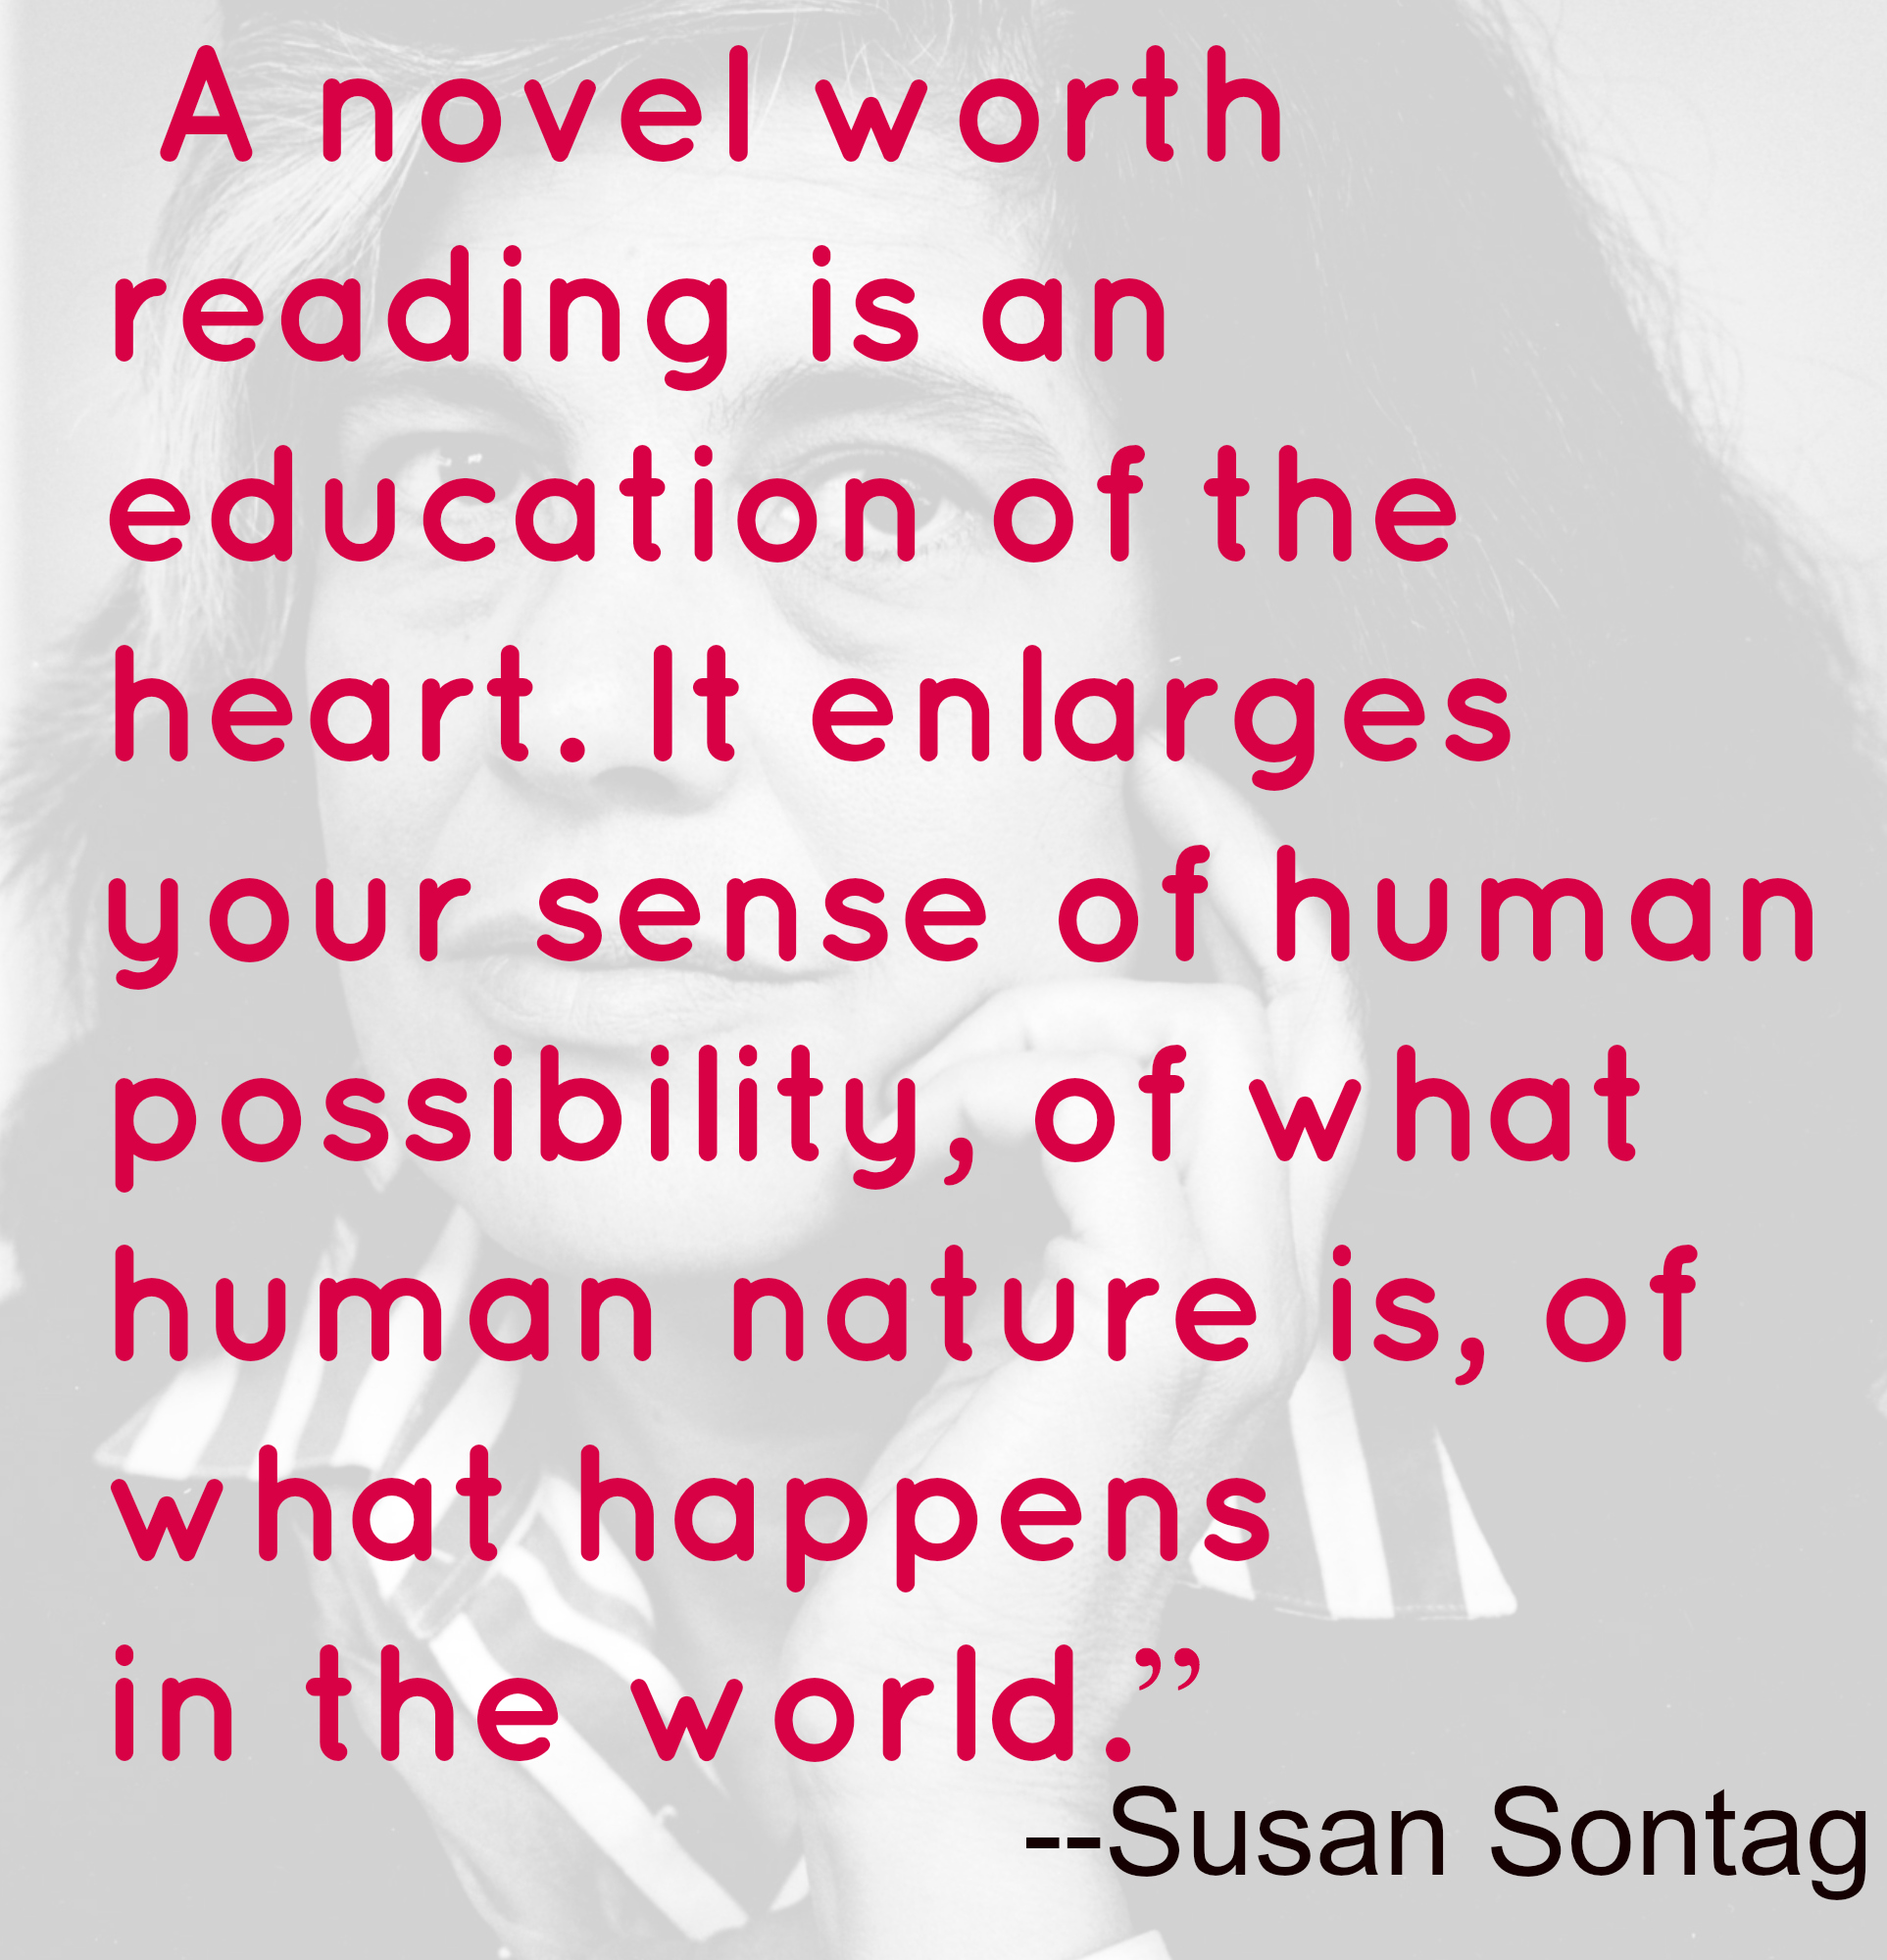 A novel worth reading is an education of the heart. It enlarges your sense of human possibility, of what human nature is, of what happens in the world